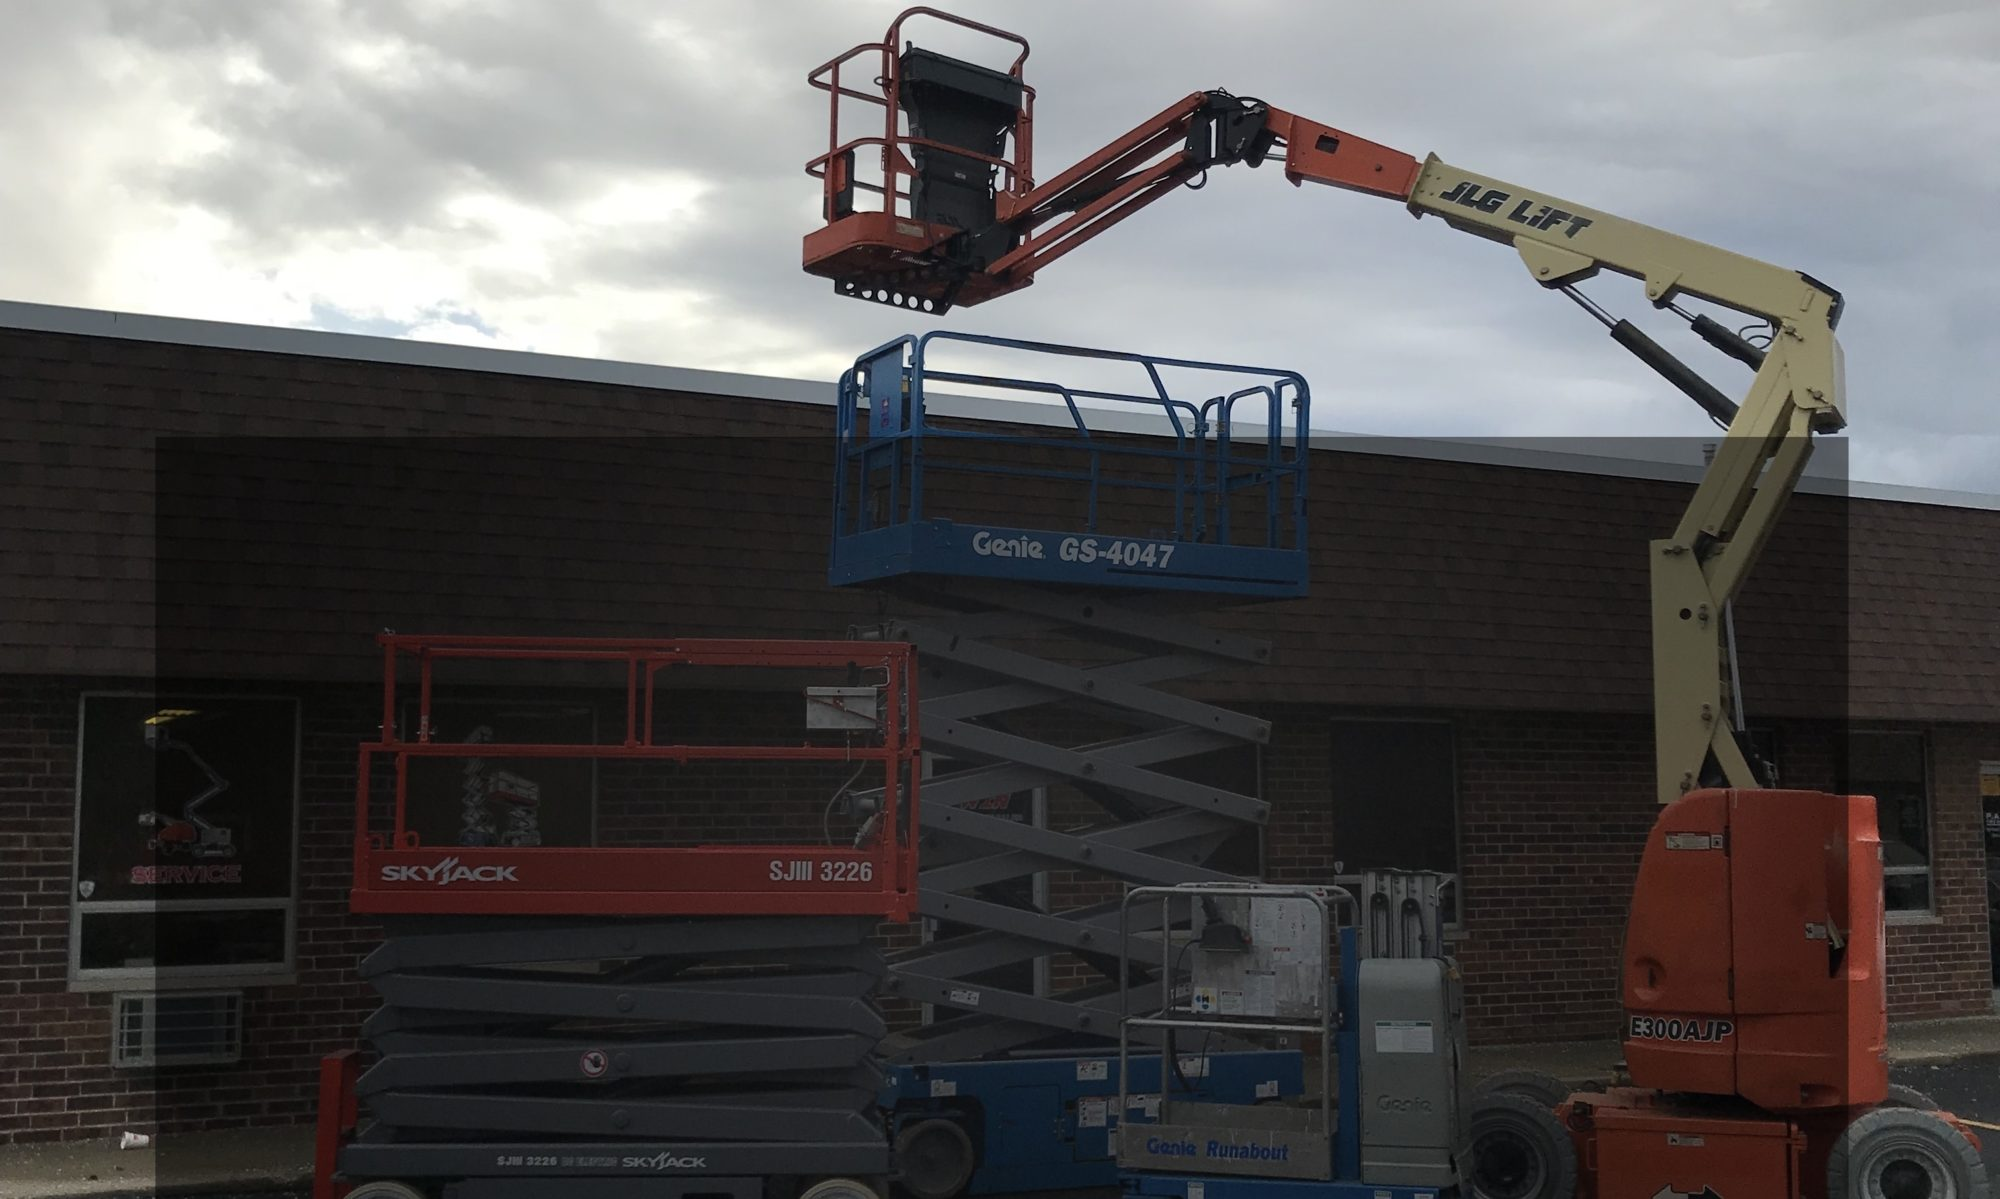 WinWinEquipment.com - Used Scissor Lift Equipment and Refurbished Boom Lifts for Sale